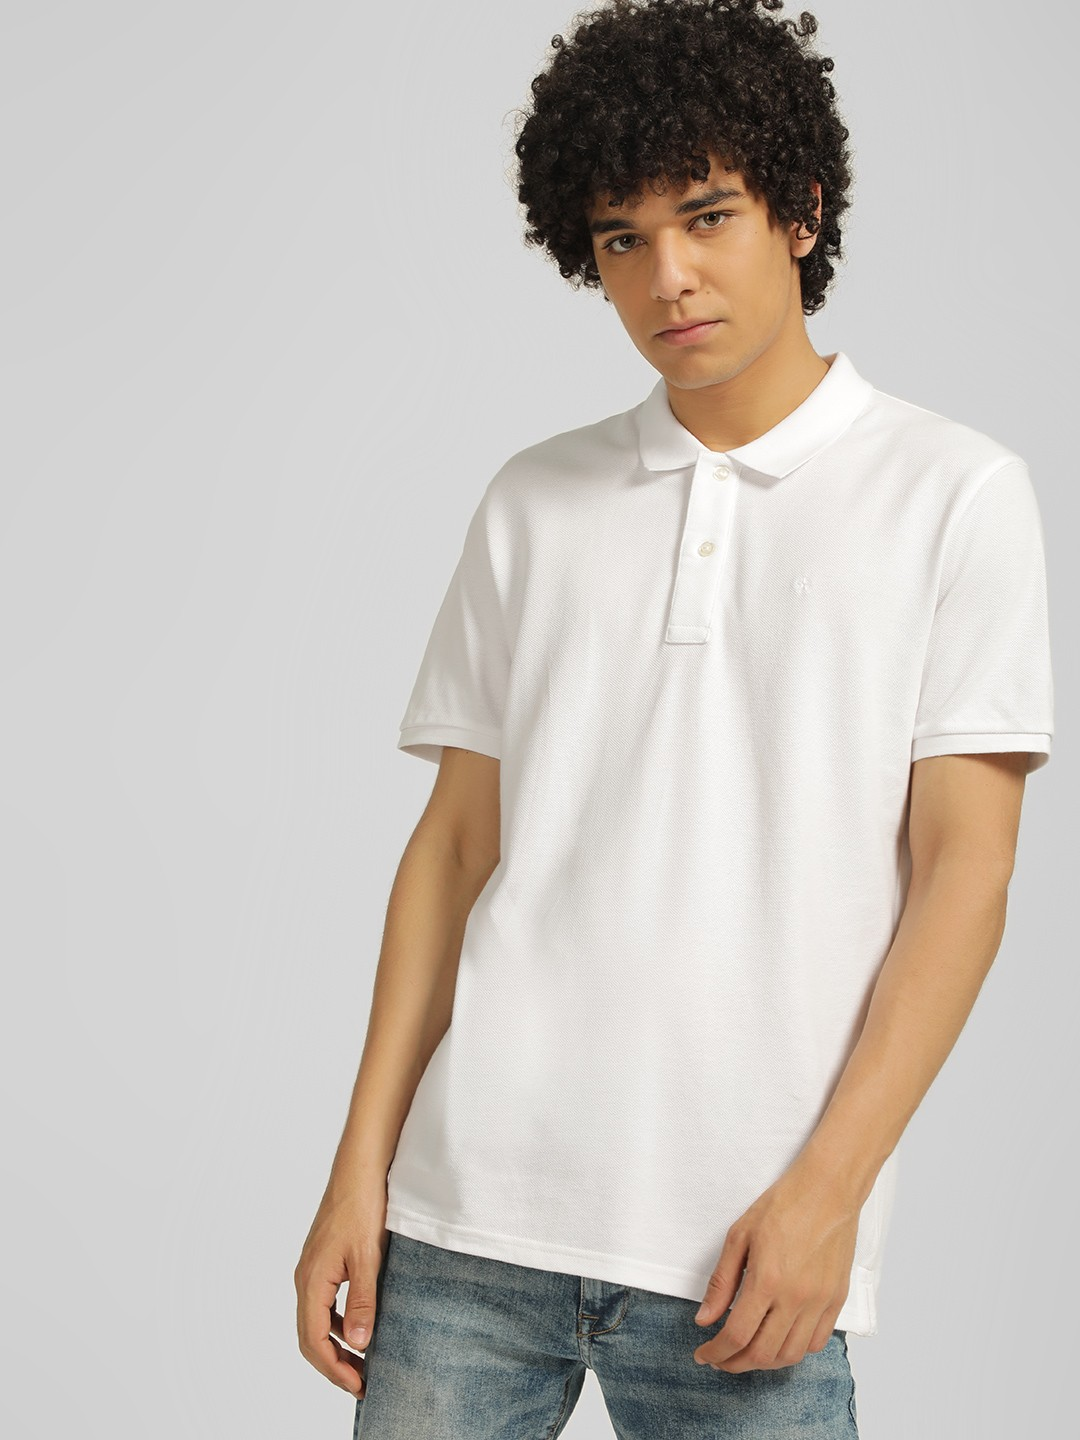 Celio White Knit Polo T-Shirt 1